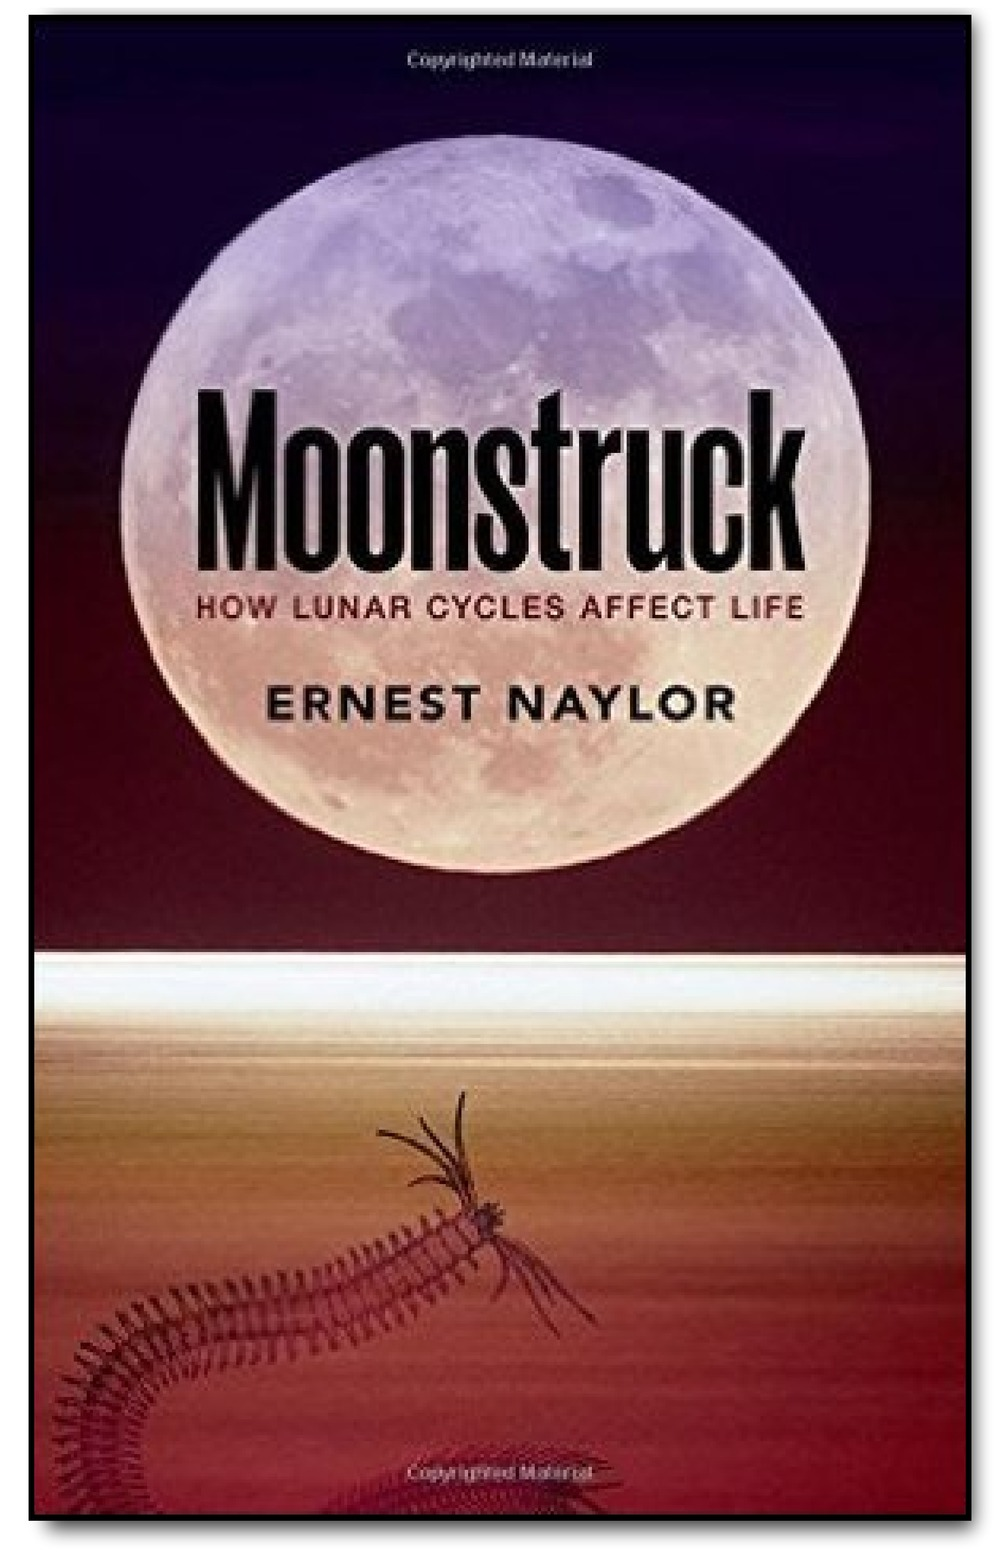 Ernest Naylor: Moonstruck, How Lunar Cycles Affect Life